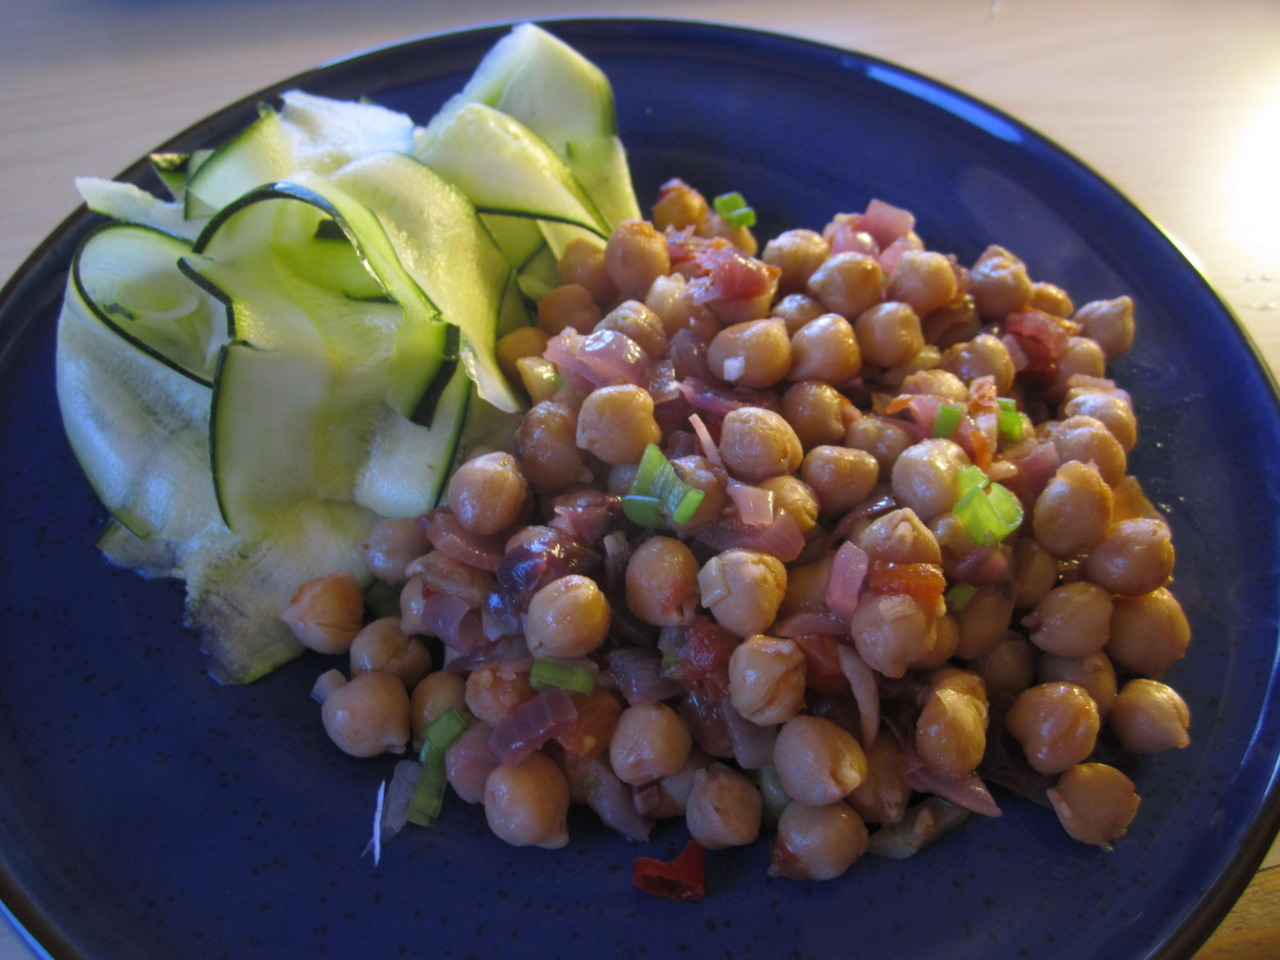 Summery chickpea stew with lemon courgette ribbons  The chickpea stew is a fun thing to be able to cook on the George! You start off by grilling a red onion, a few cloves of garlic, some chilli, 5 cherry tomatoes and a bit of vegetable oil for 10minutes. Then add a can of chickpeas and half a glass of rosé wine and cook for another 10minutes. It's best left for a while, resting on the turned-off grill and reheated 30minutes or so after, but you can eat it straight-away! Then add some spring onion at the end.   The courgette ribbons are done by using a vegetable peeler along the length of the courgette and then just dress with some fresh  lemon juice.   Grill love